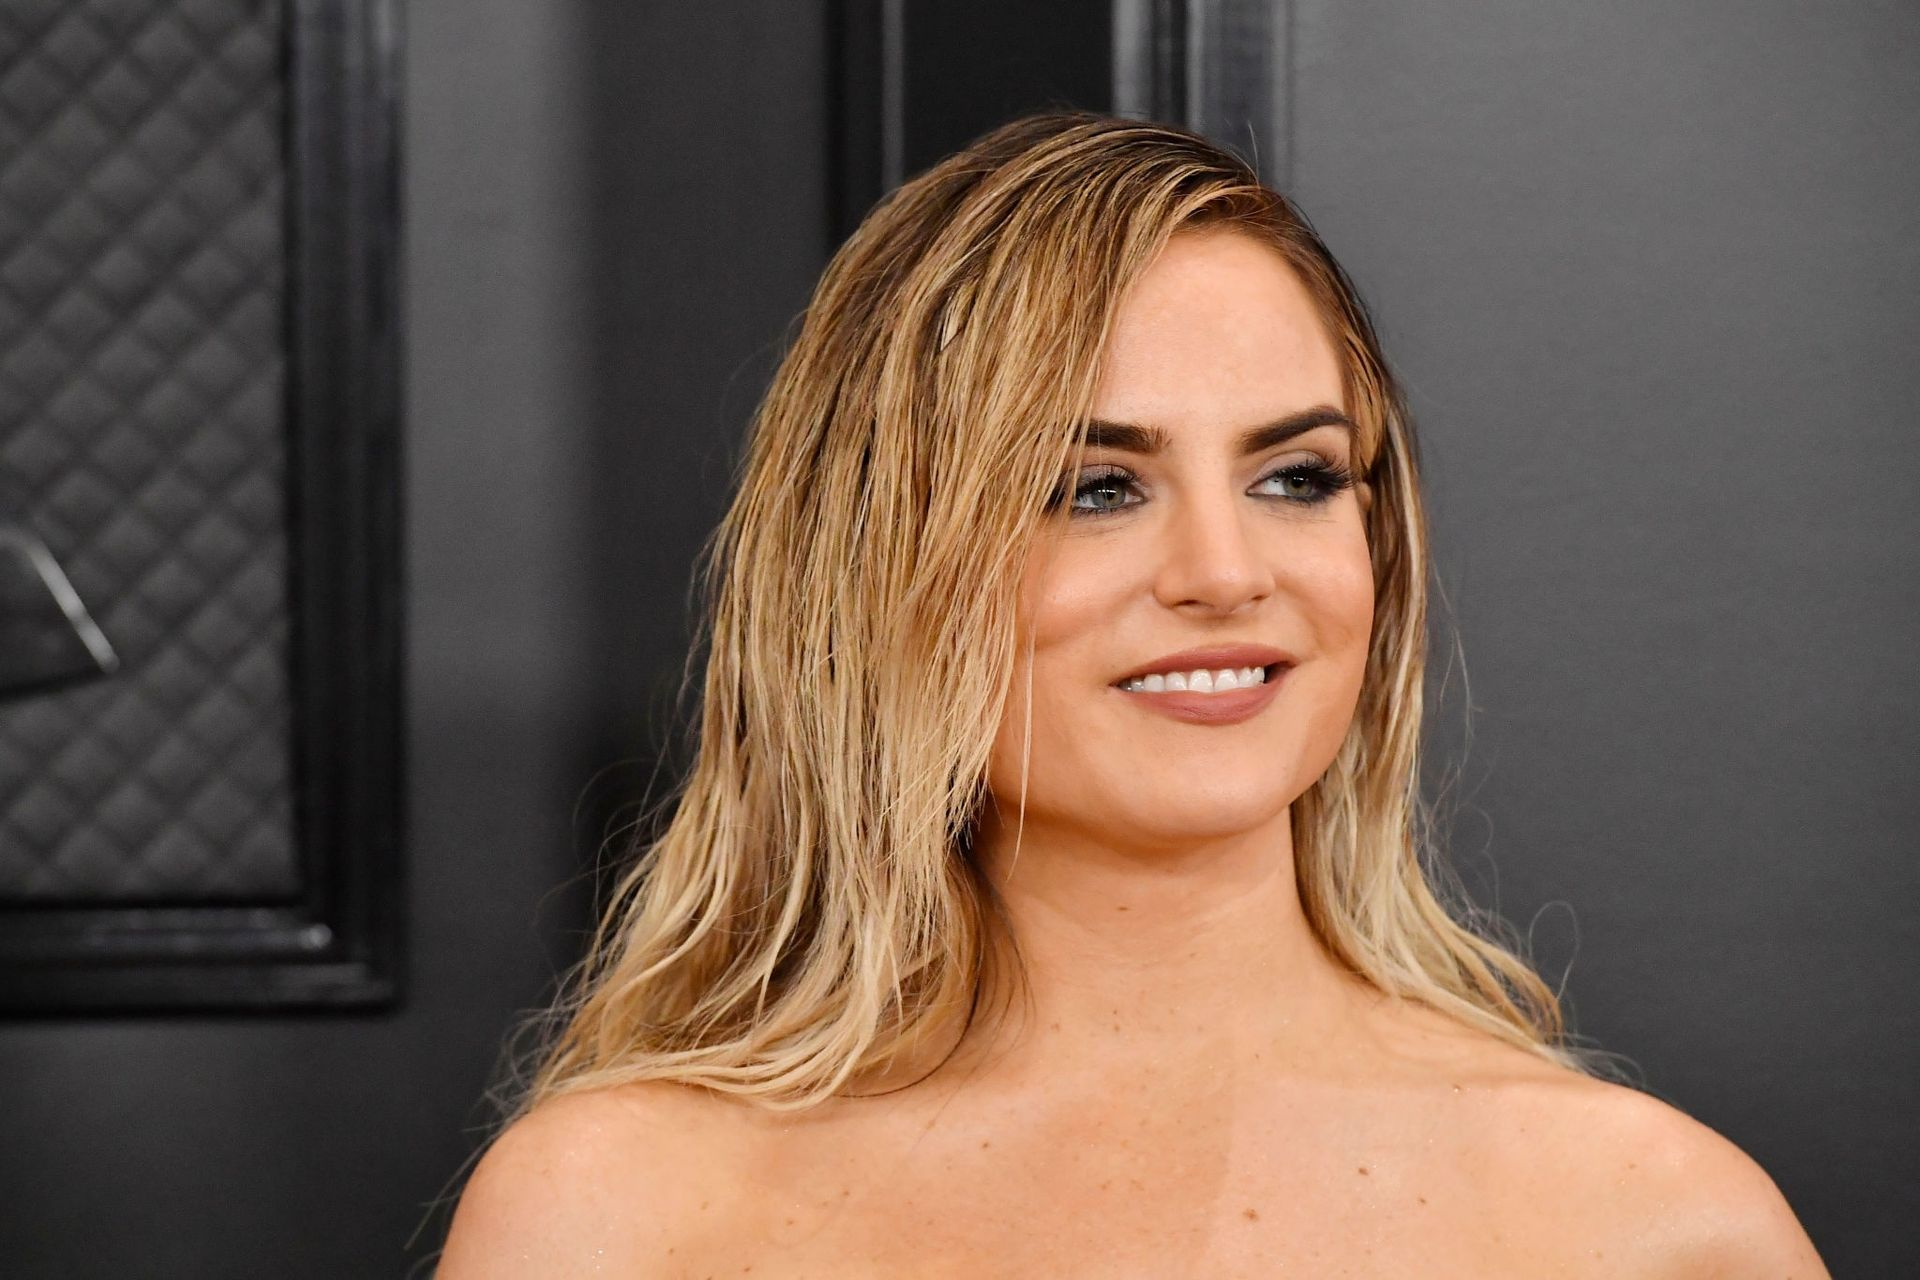 Jojo Shows Her Legs And Cleavage At The 62nd Annual Grammy Awards 0039